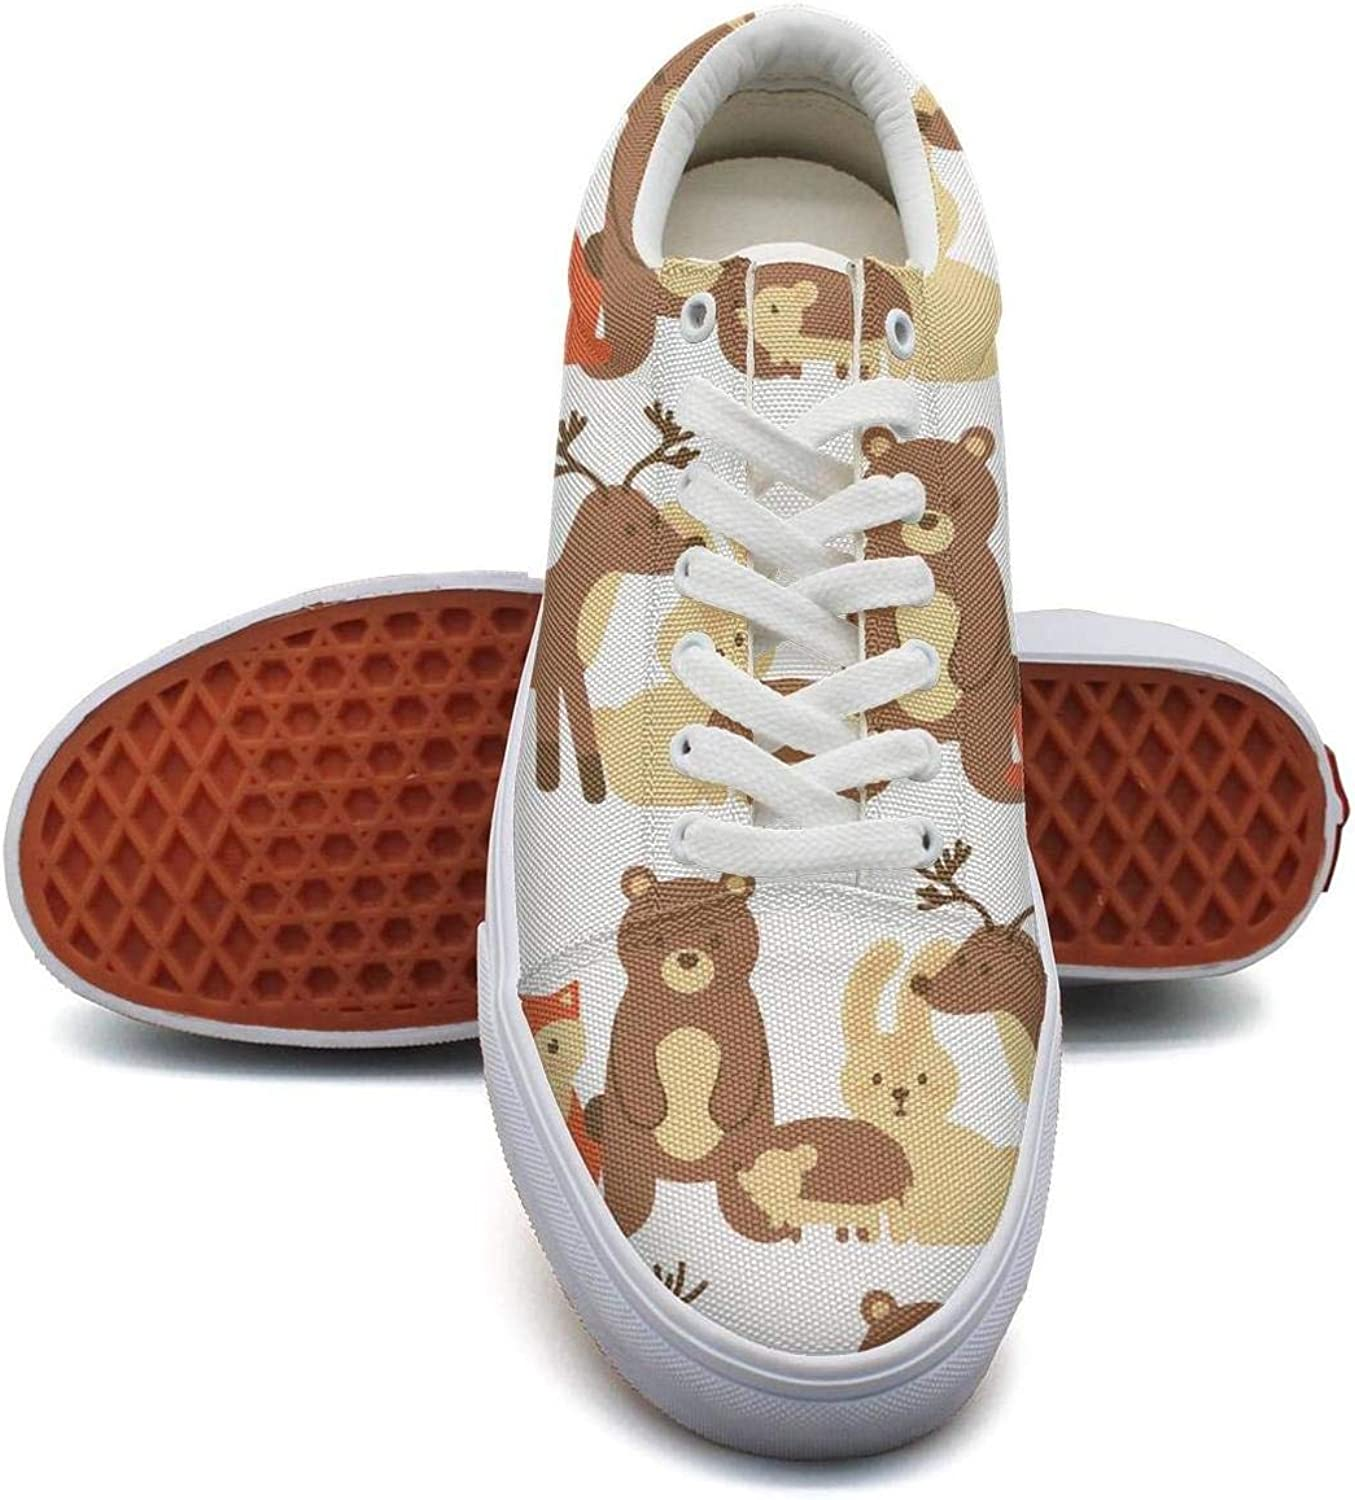 WENL Women's Stylish Sneaker Slip-on Athletic Cute Animal Foxes Bear Deer owl